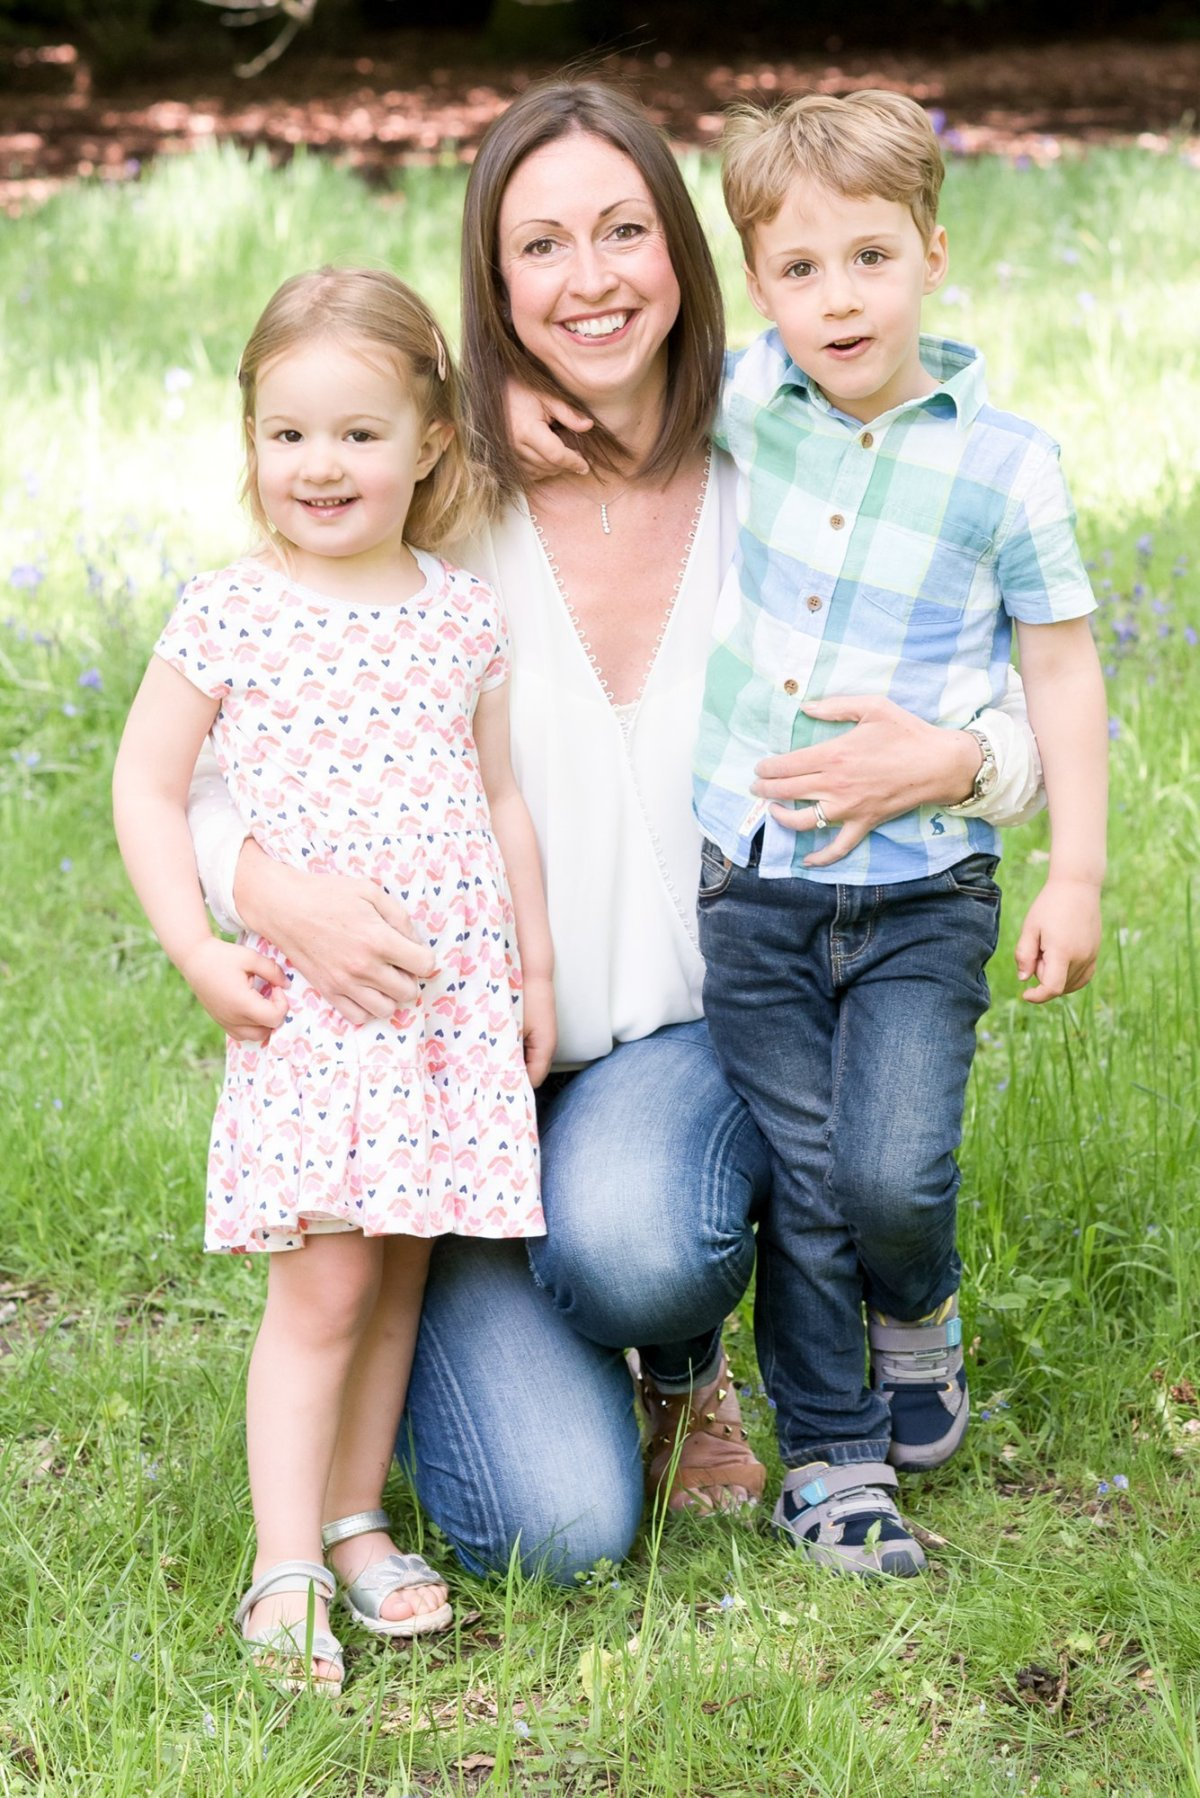 family photography outdoors in the spring